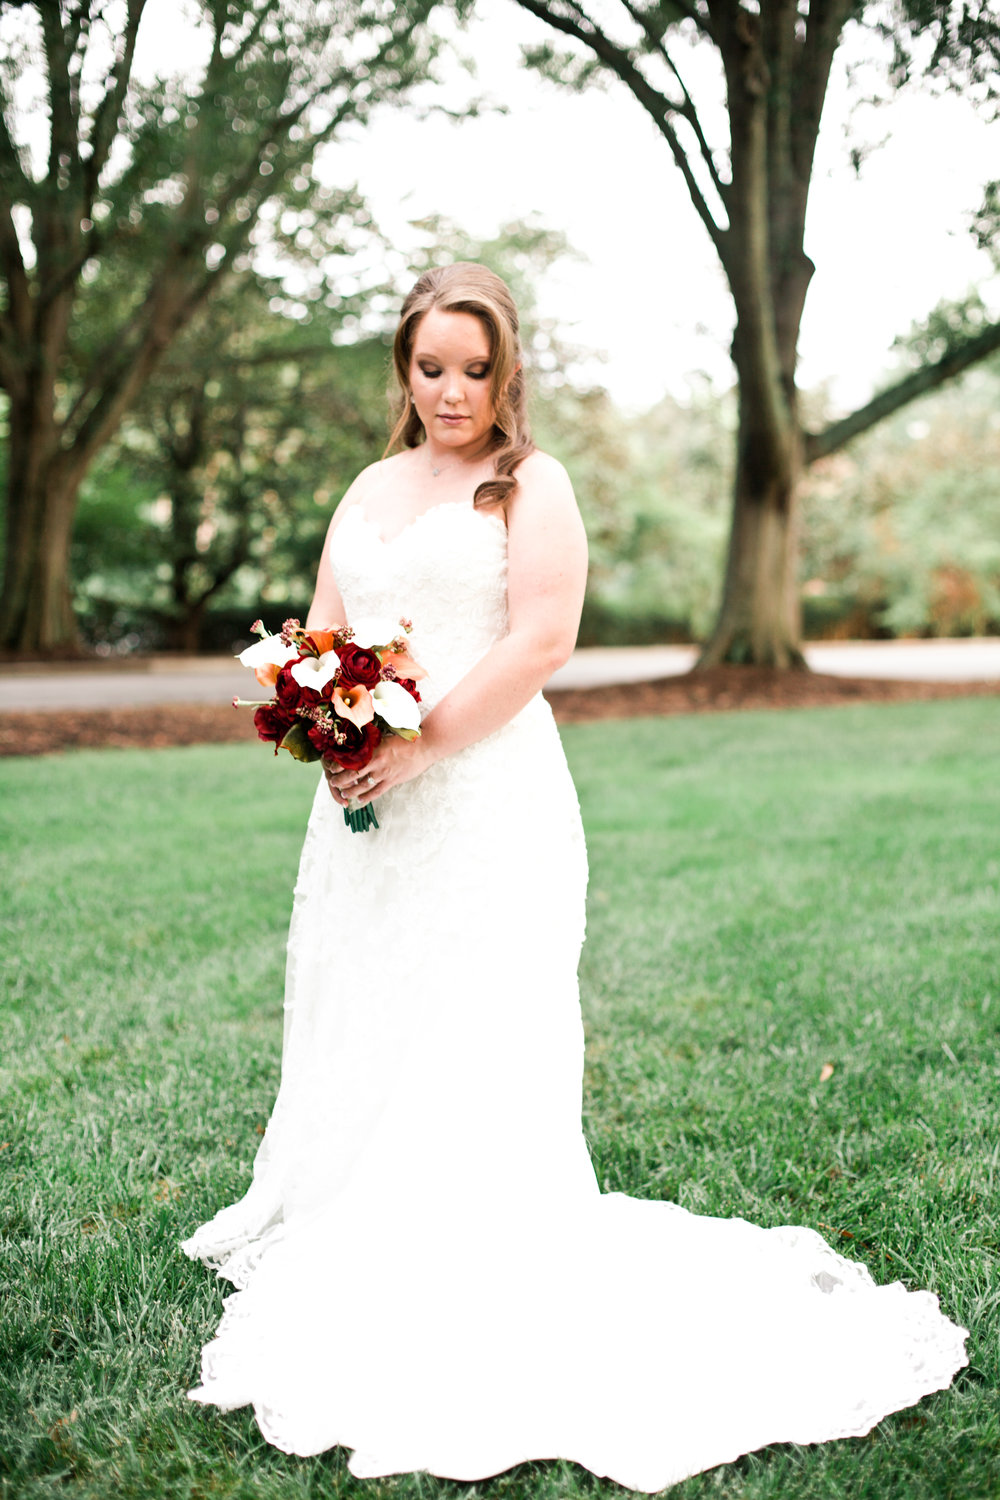 gabbie_bridal_poured_out_photography-52.jpg